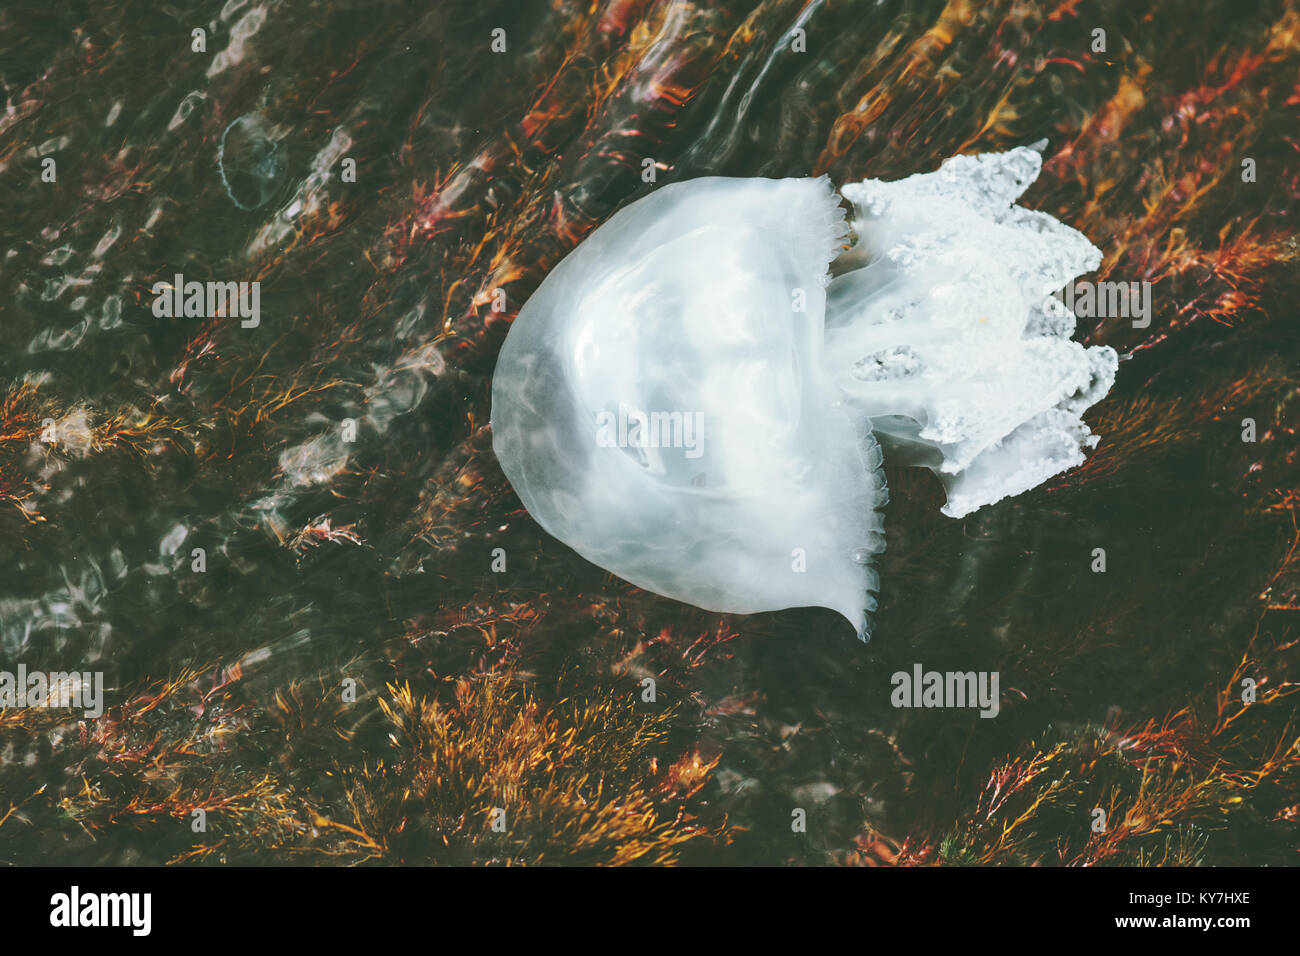 Sea Jellyfish underwater natural view harmony relaxing scenery Stock Photo